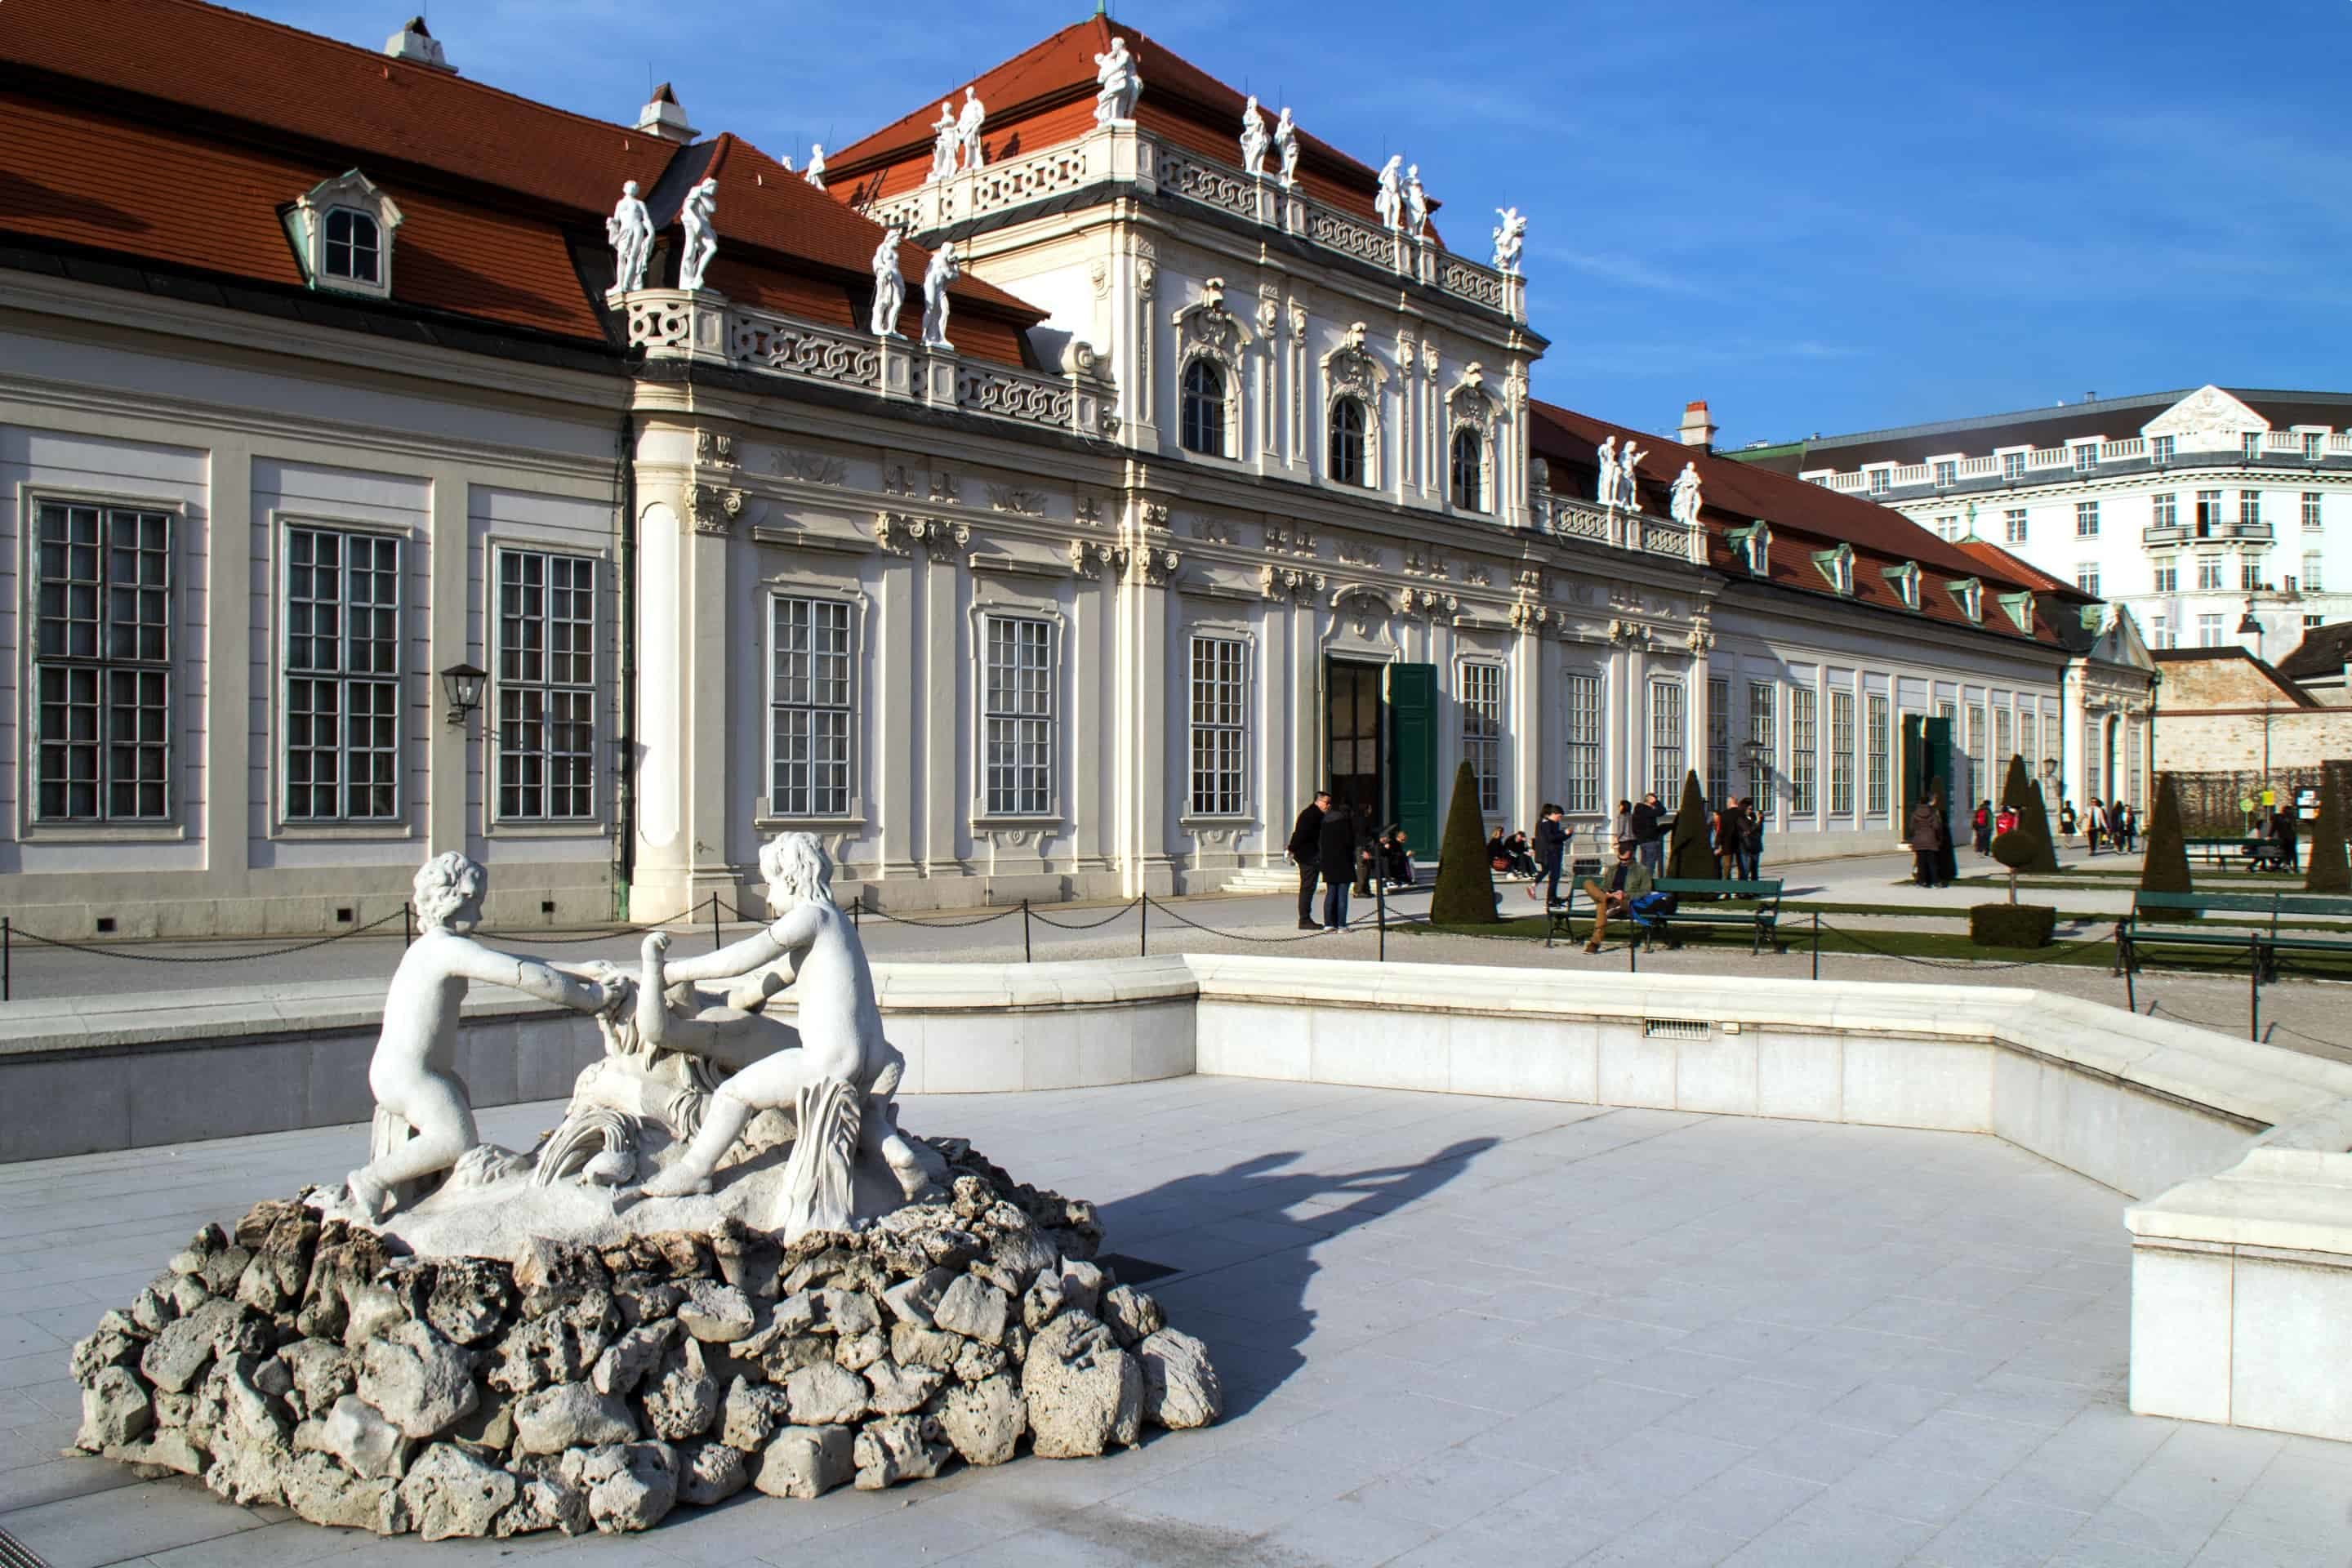 The Lower Belvedere